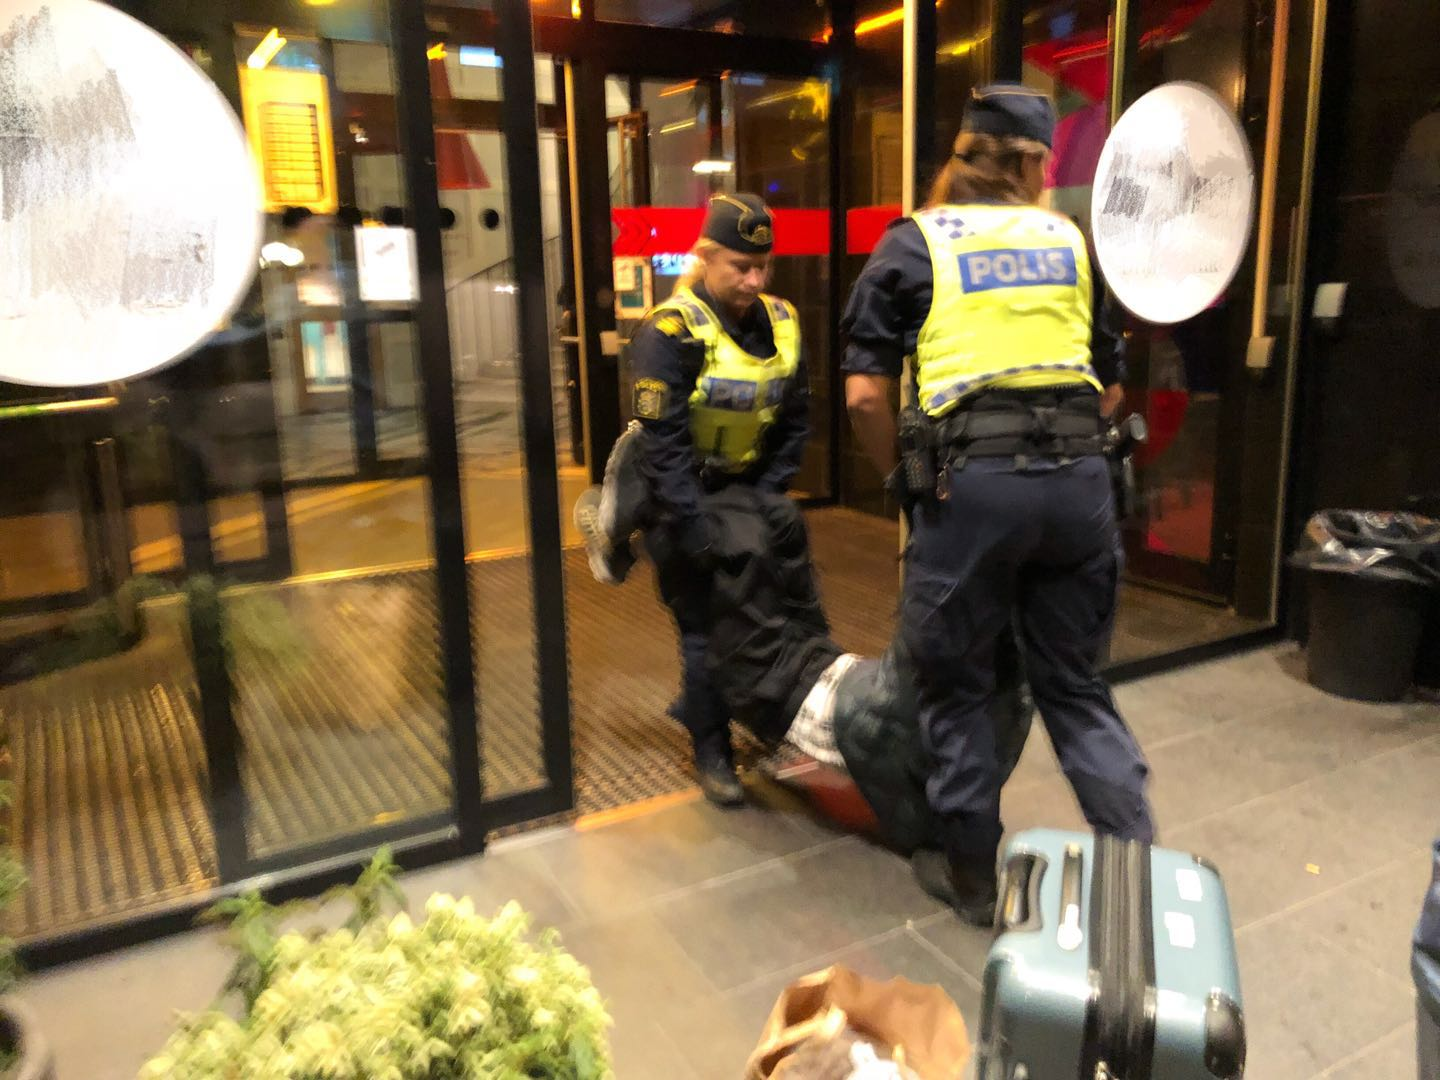 Chinese Embassy in Sweden issues safety alert following tourists' 'nightmare' incident by local police